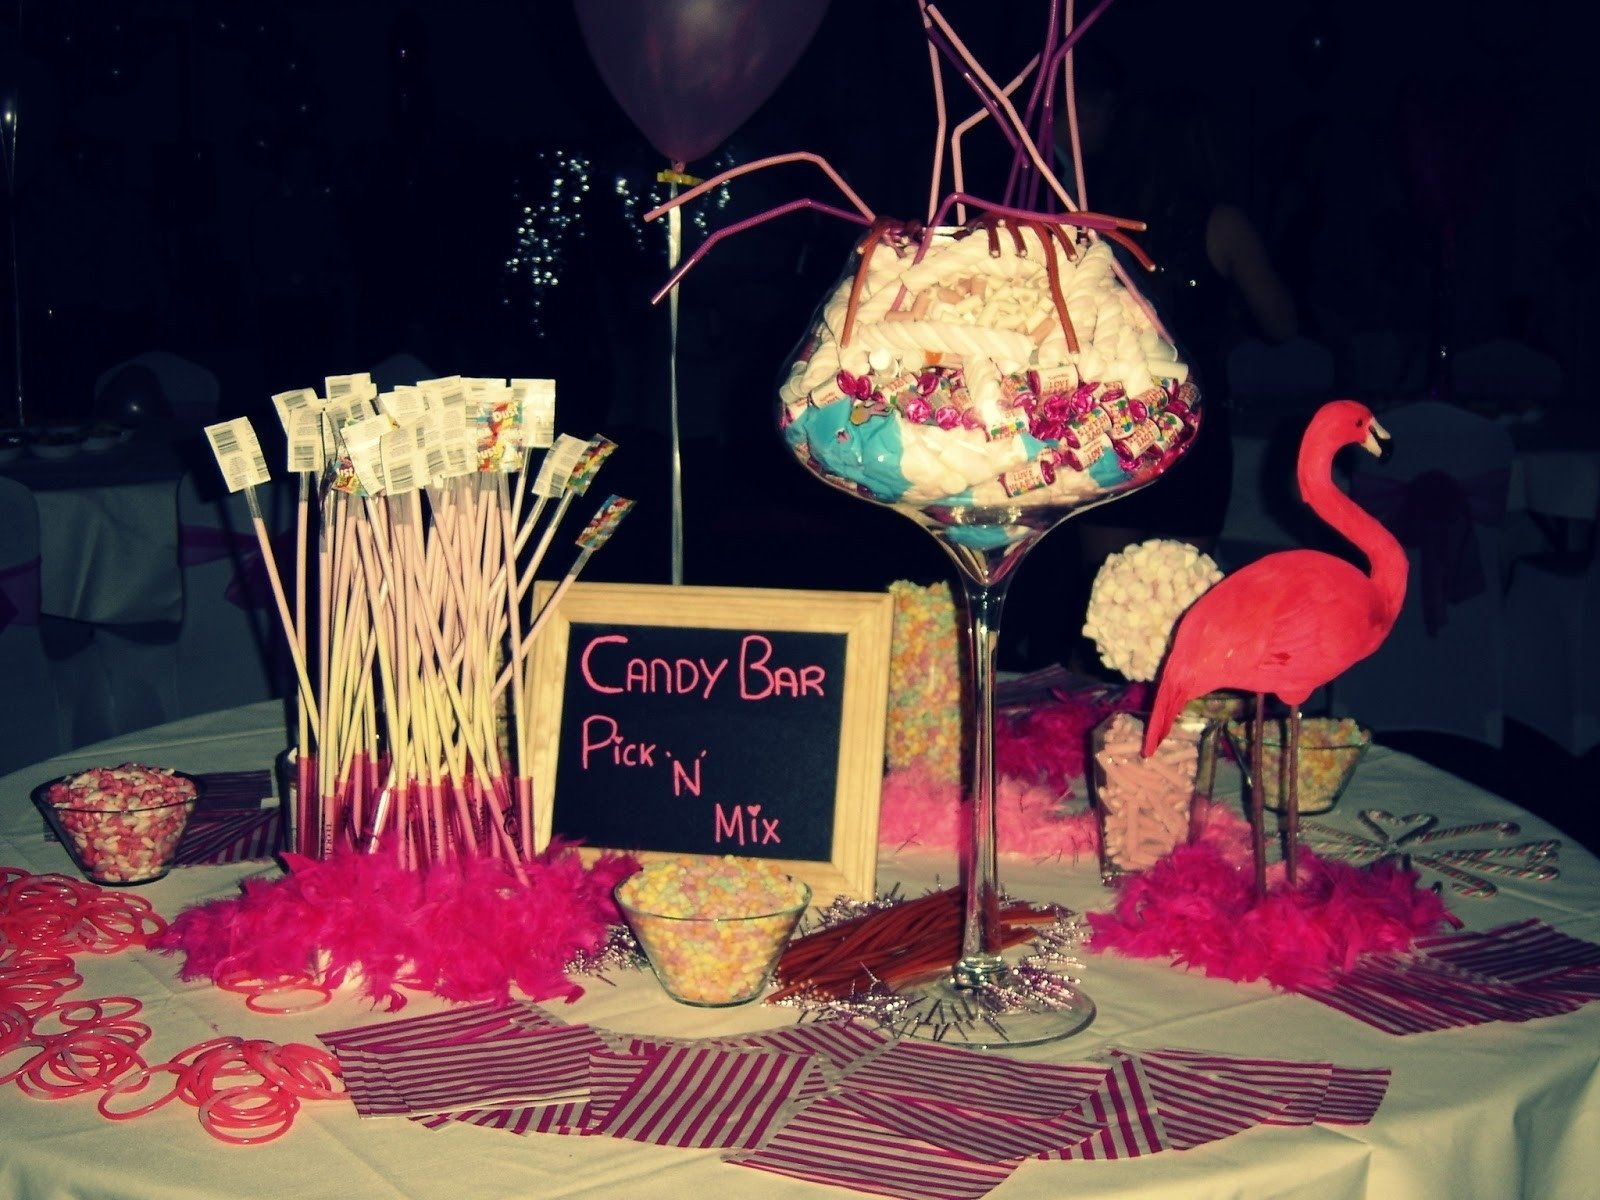 10 Unique Ideas For An 18Th Birthday how to plan a surprise birthday party at home inspirational 18th 1